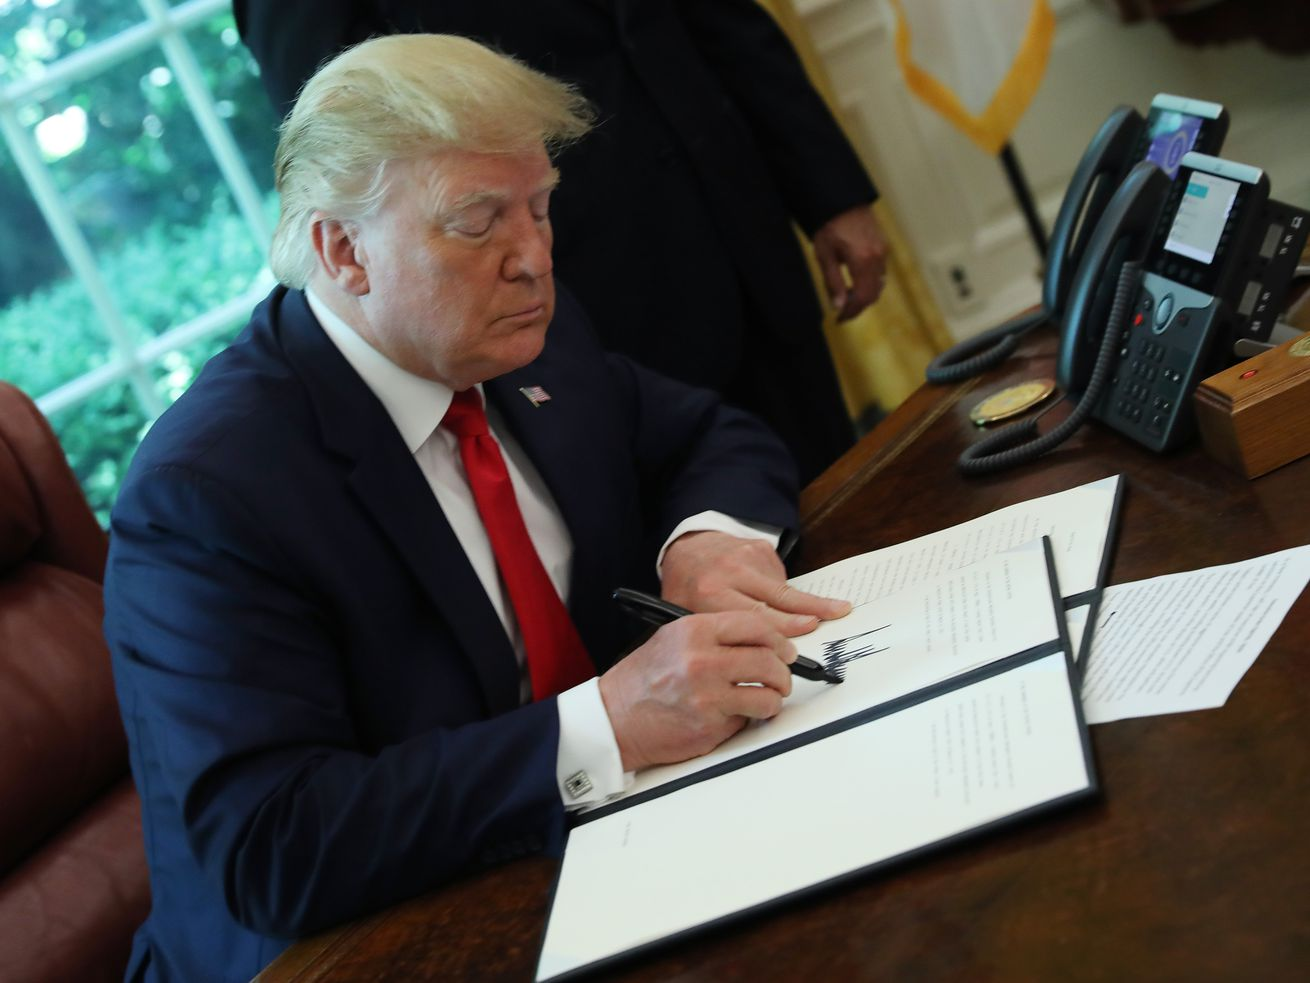 President Donald Trump signs an executive order imposing new sanctions on Iran on June 24, 2019, in Washington, DC.